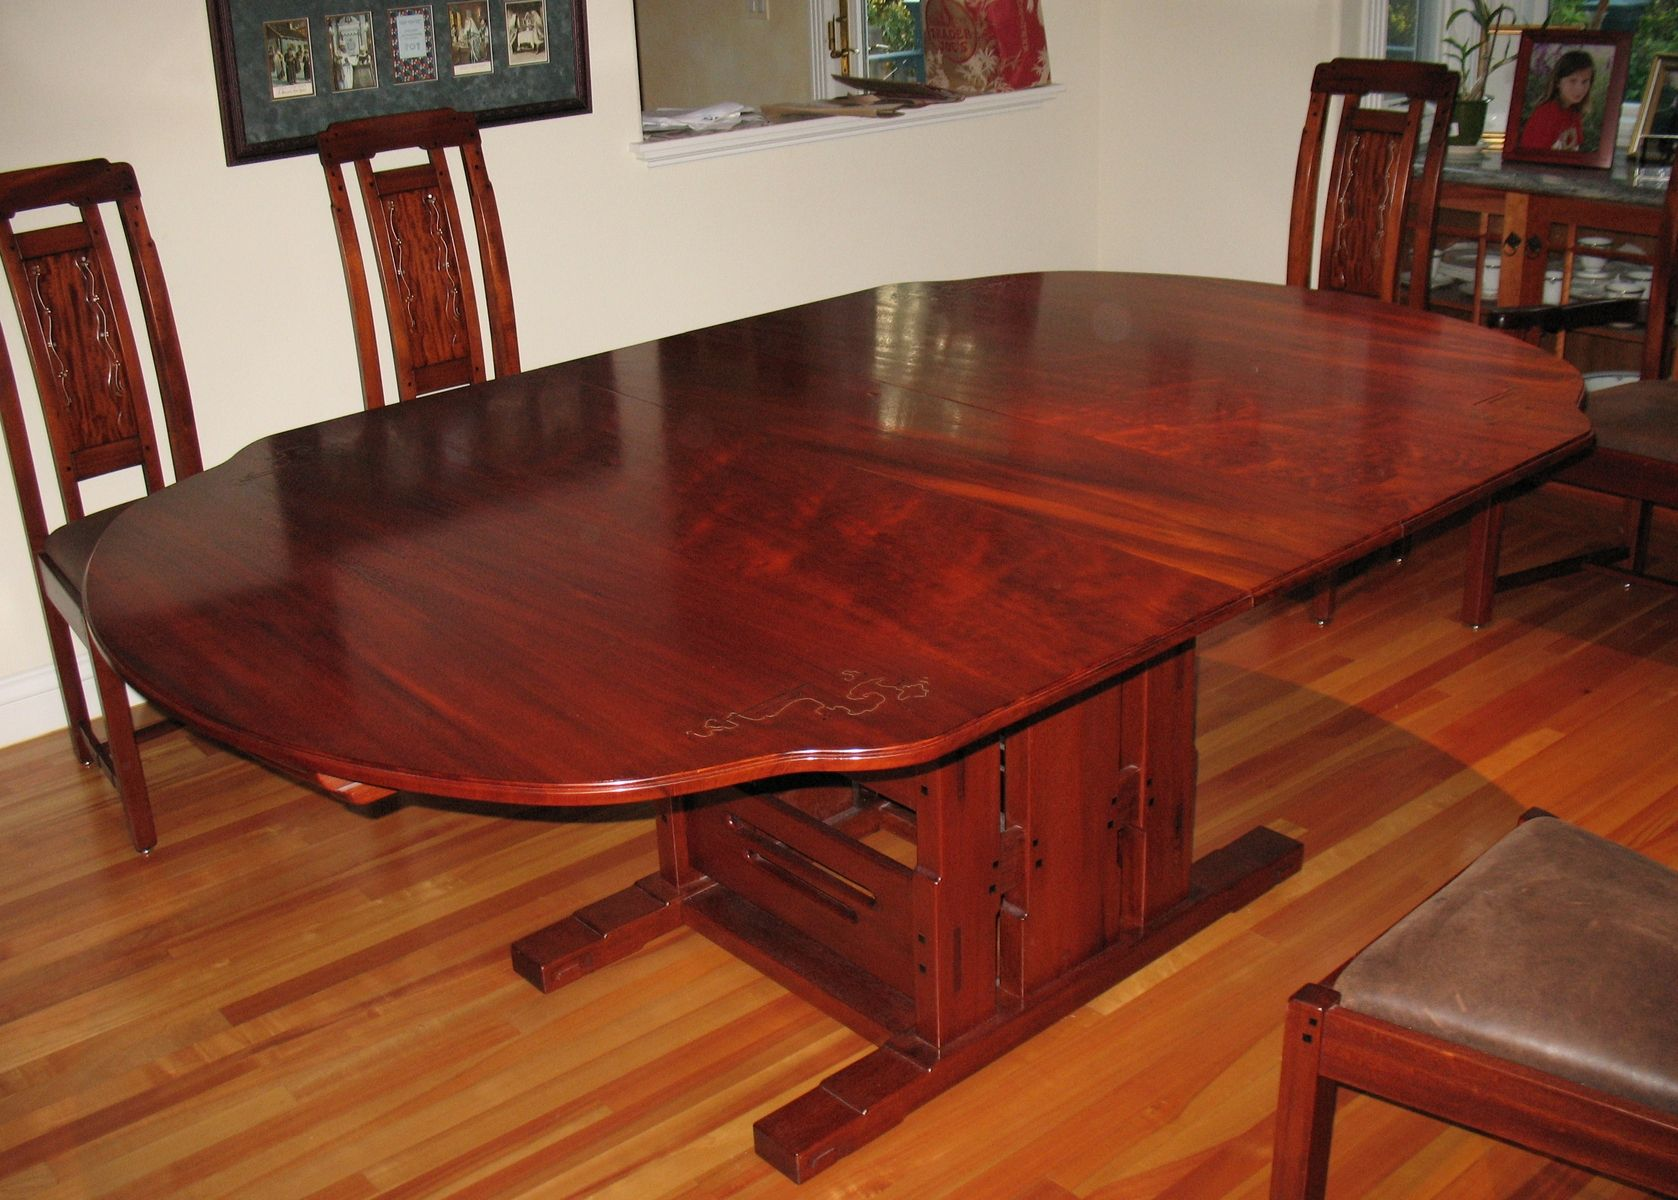 Custom Dining Room Table (Gamble House) by Paula Garbarino Custom Furniture | CustomMade.com